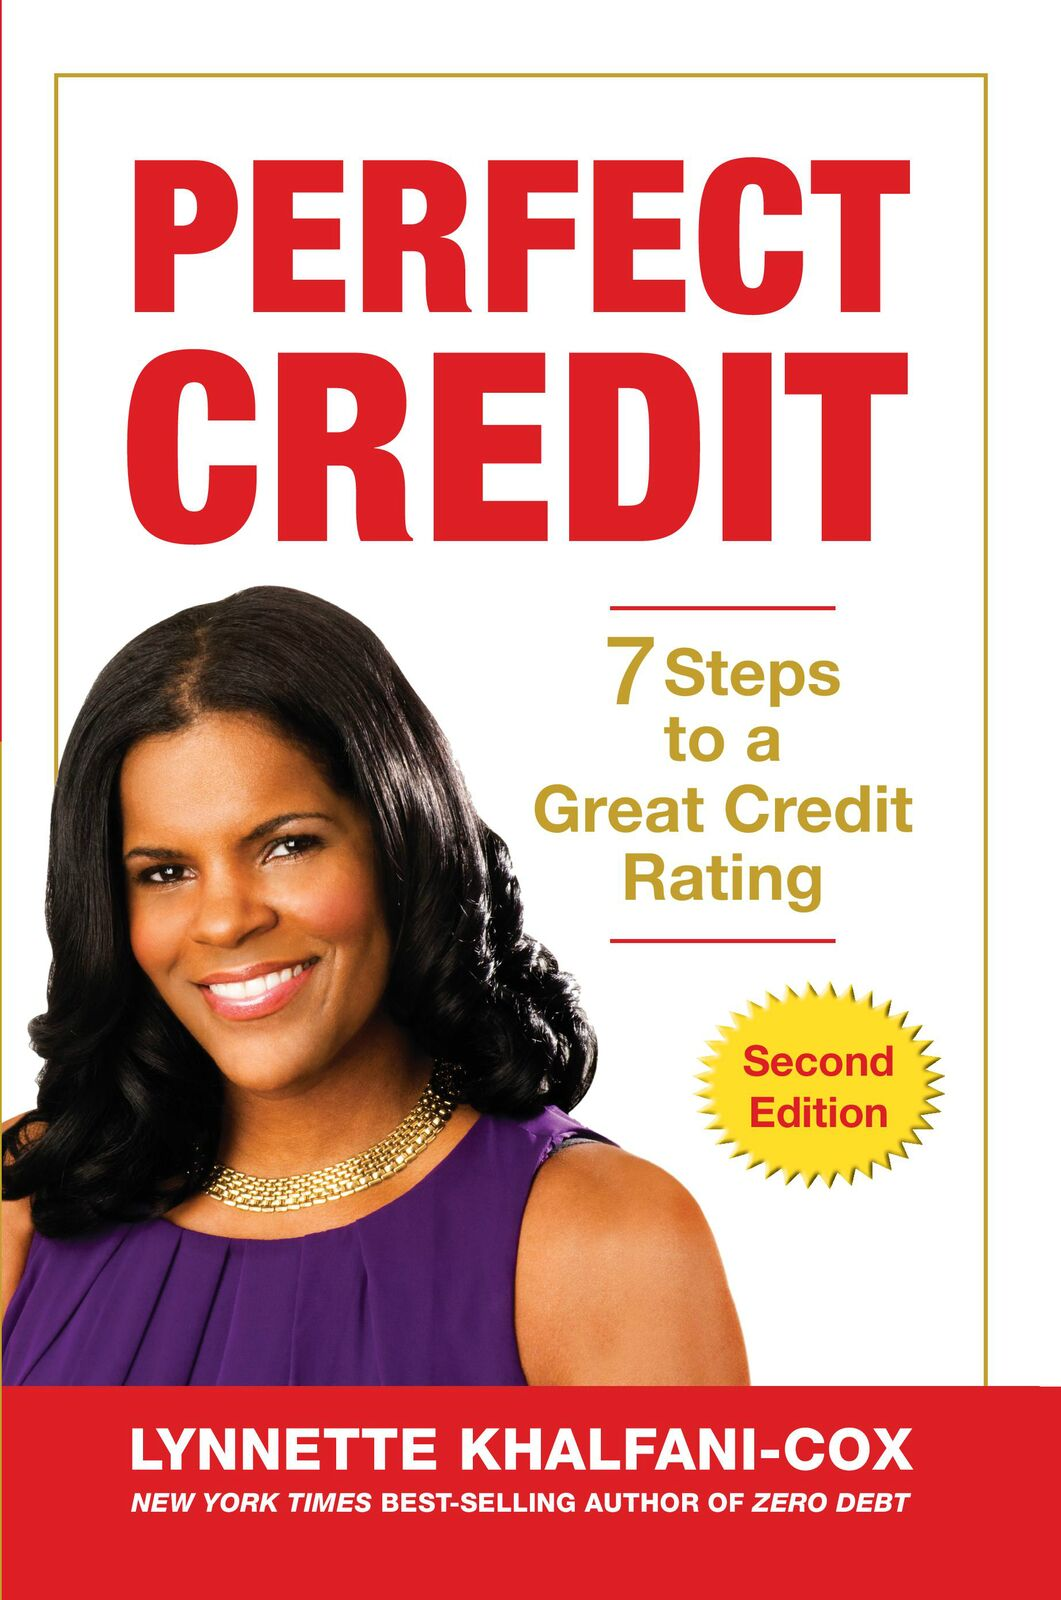 Perfect Credit 2nd edition